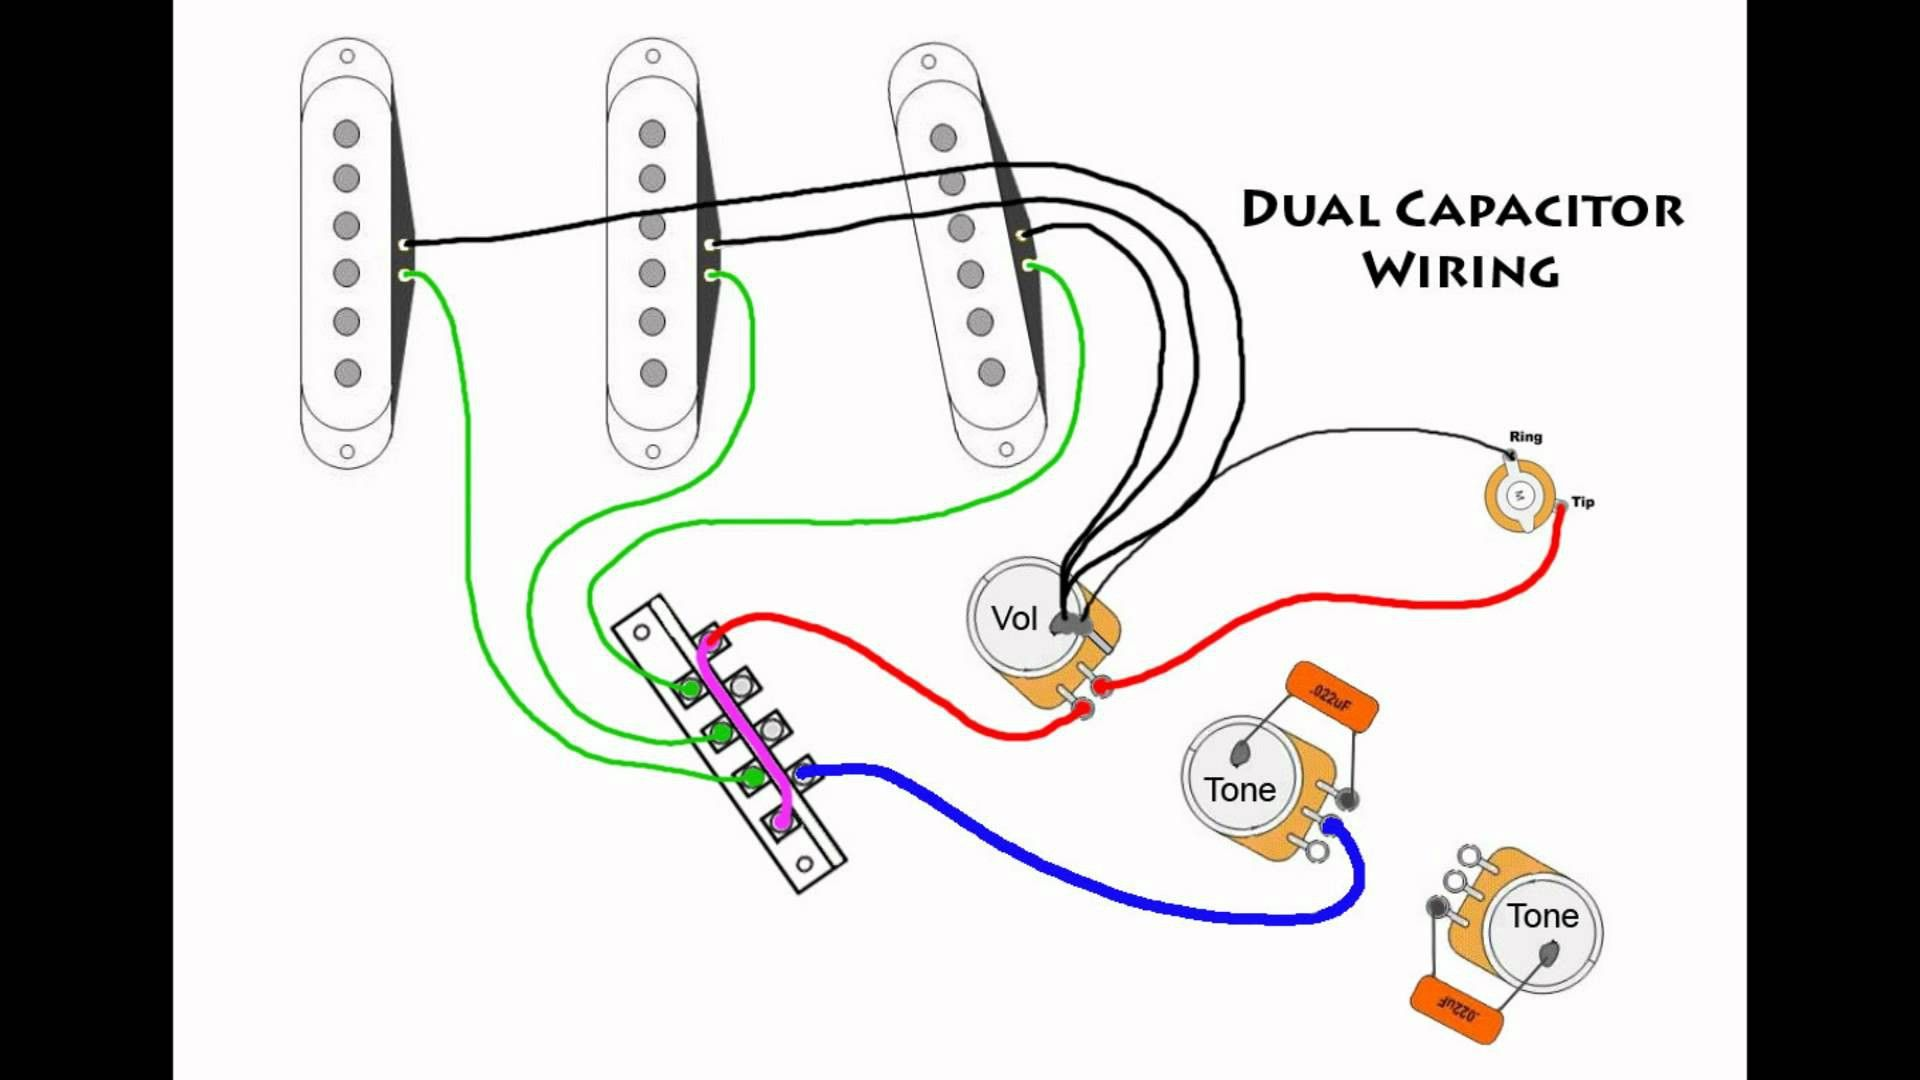 Fender Stratocaster Wiring Diagram Best Of Strat Throughout Diagrams Diseno De Guitarra Guitarra Electrica Guitarras